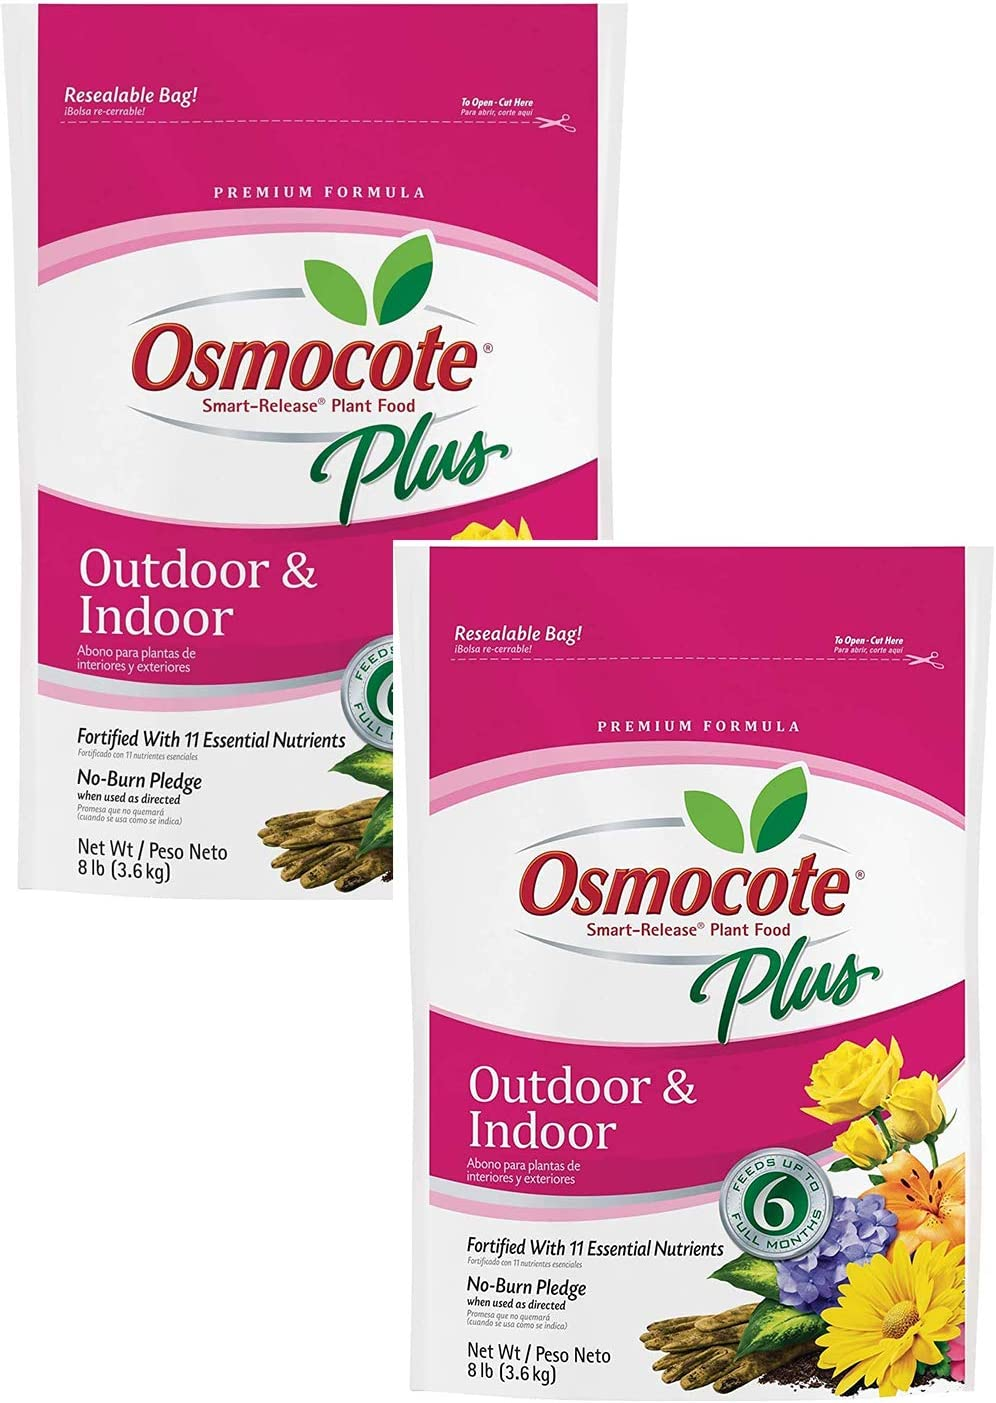 Osmocote Smart-Release Plant Food Plus Outdoor & Indoor, 2 Pack of 8 lbs (Limited Edition)